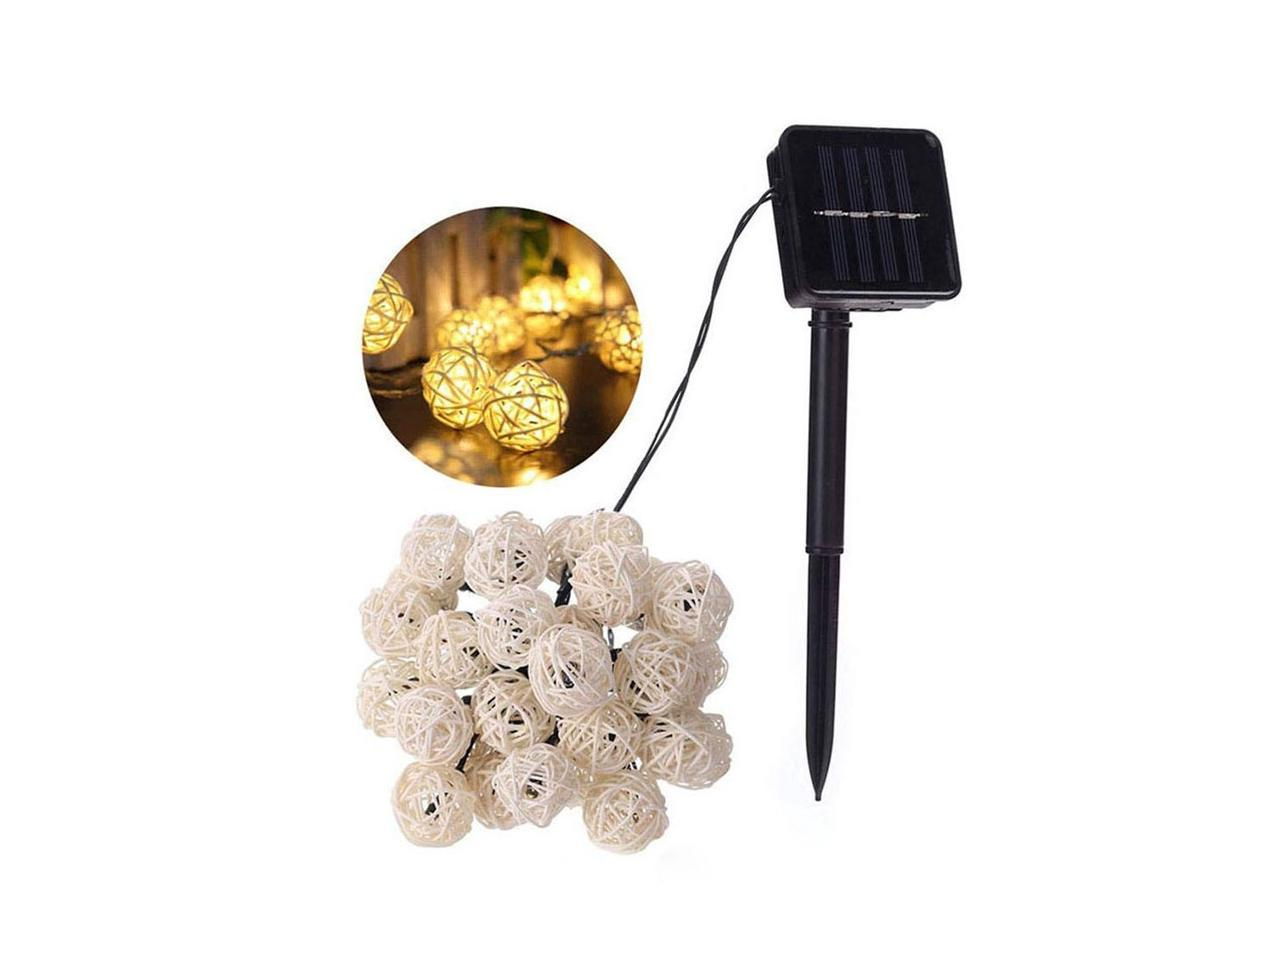 With A Timed Remote Outdoor Garden Solar Led Fairy Tale Outdoor Ball Bulb Patio 2 Modes Waterproof Ideal f/ür DIY With Led Ball 6m 20 Led Balcony